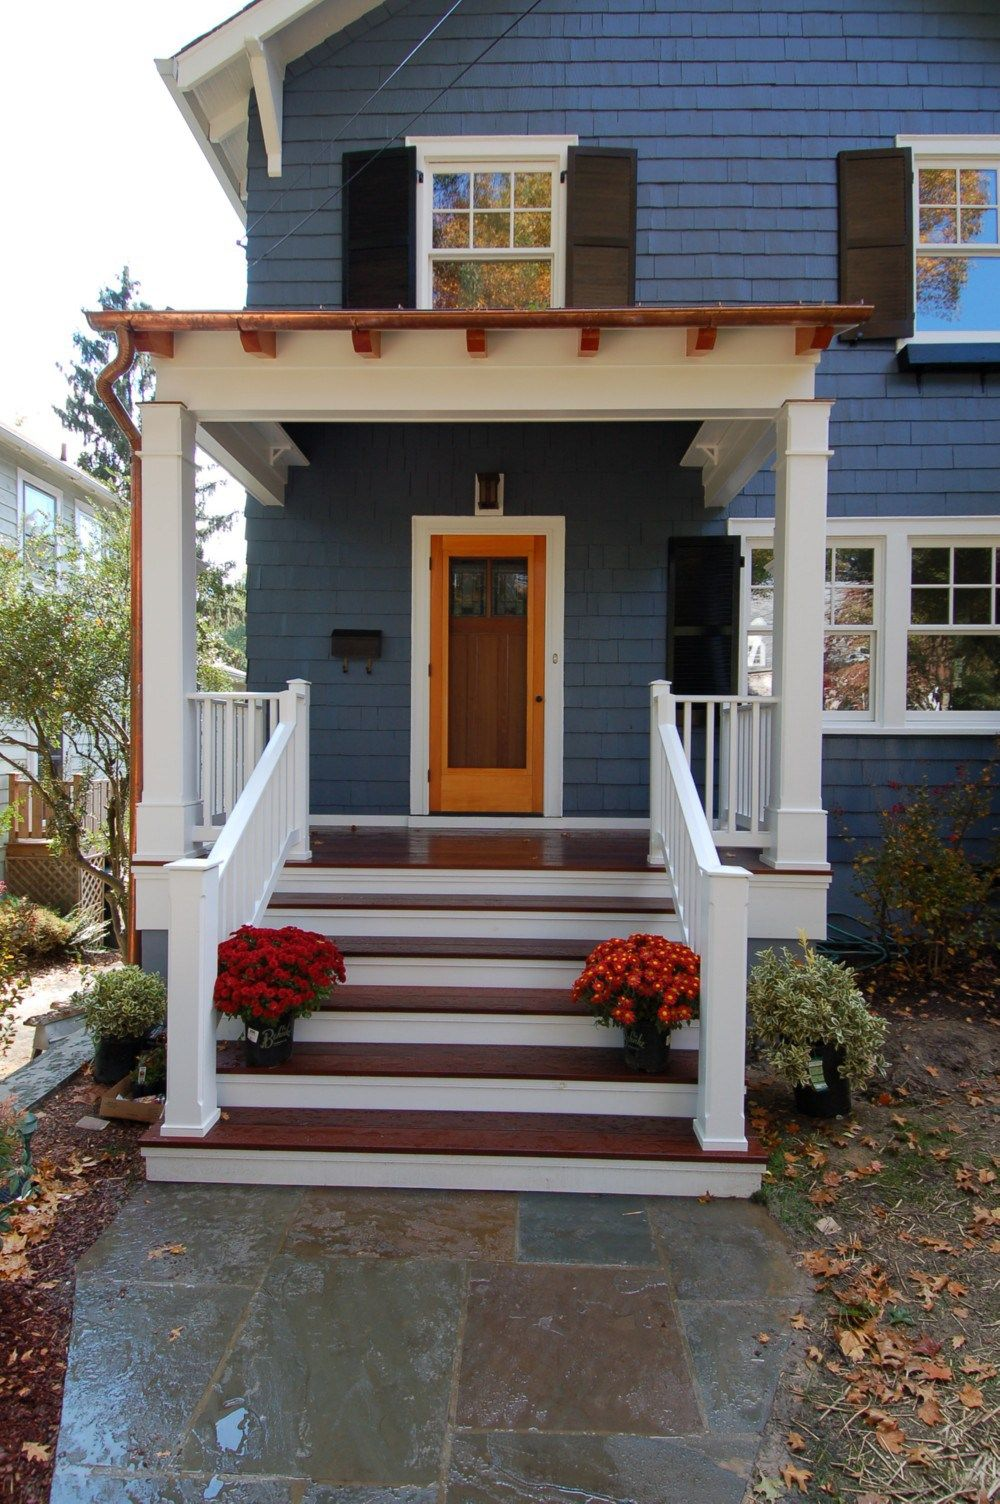 Awesome Small Front Porch Design Ideas 11 Small Front Porches